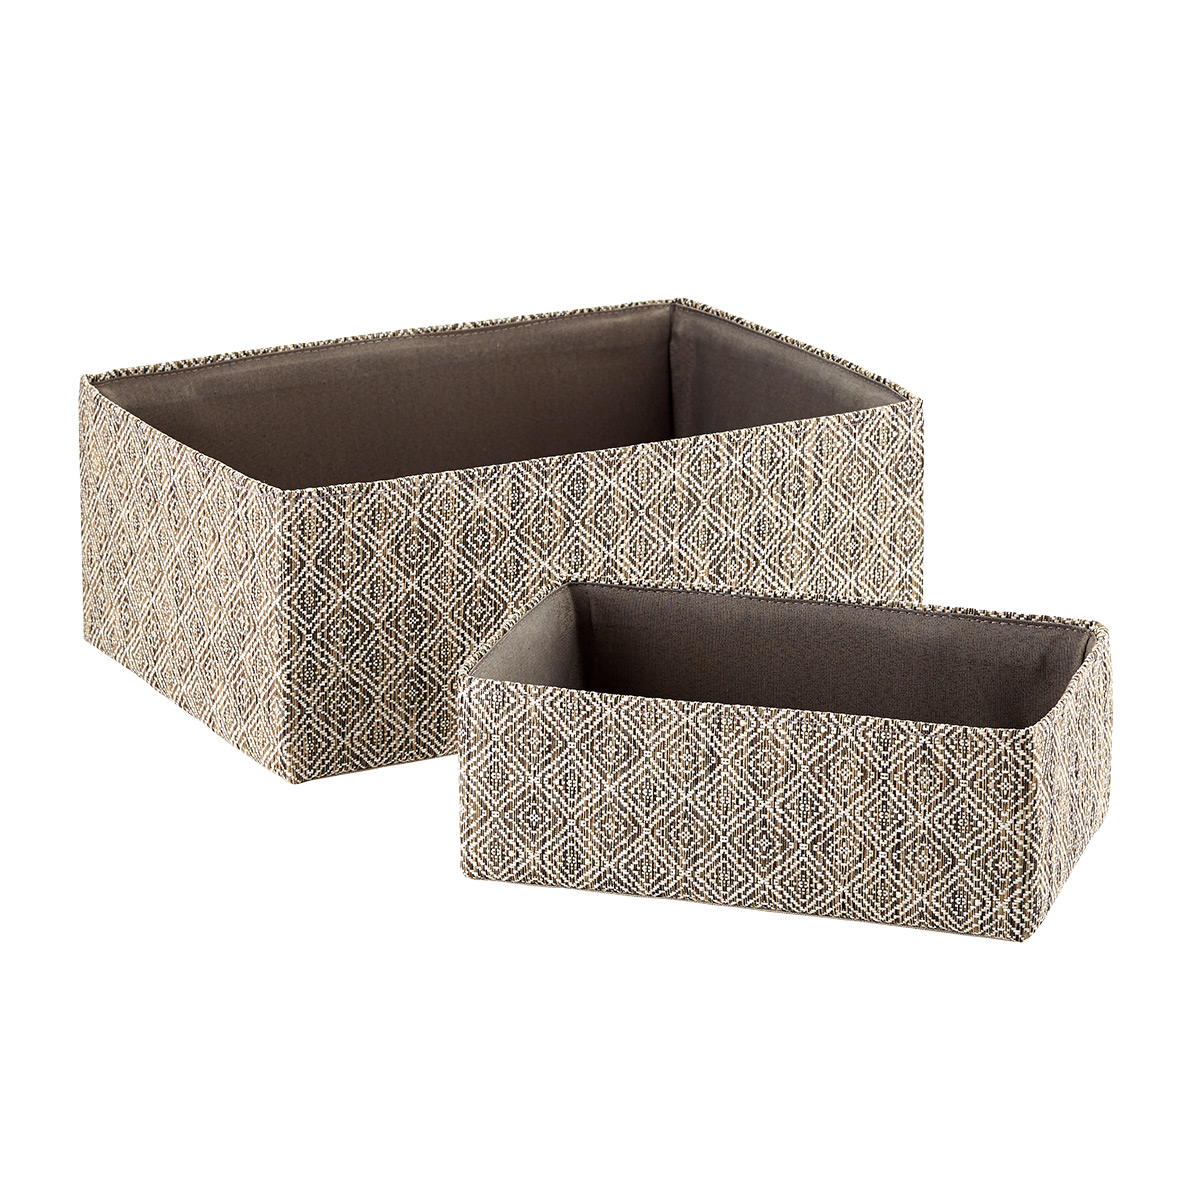 Diamonds Woven Kiva Storage Bins